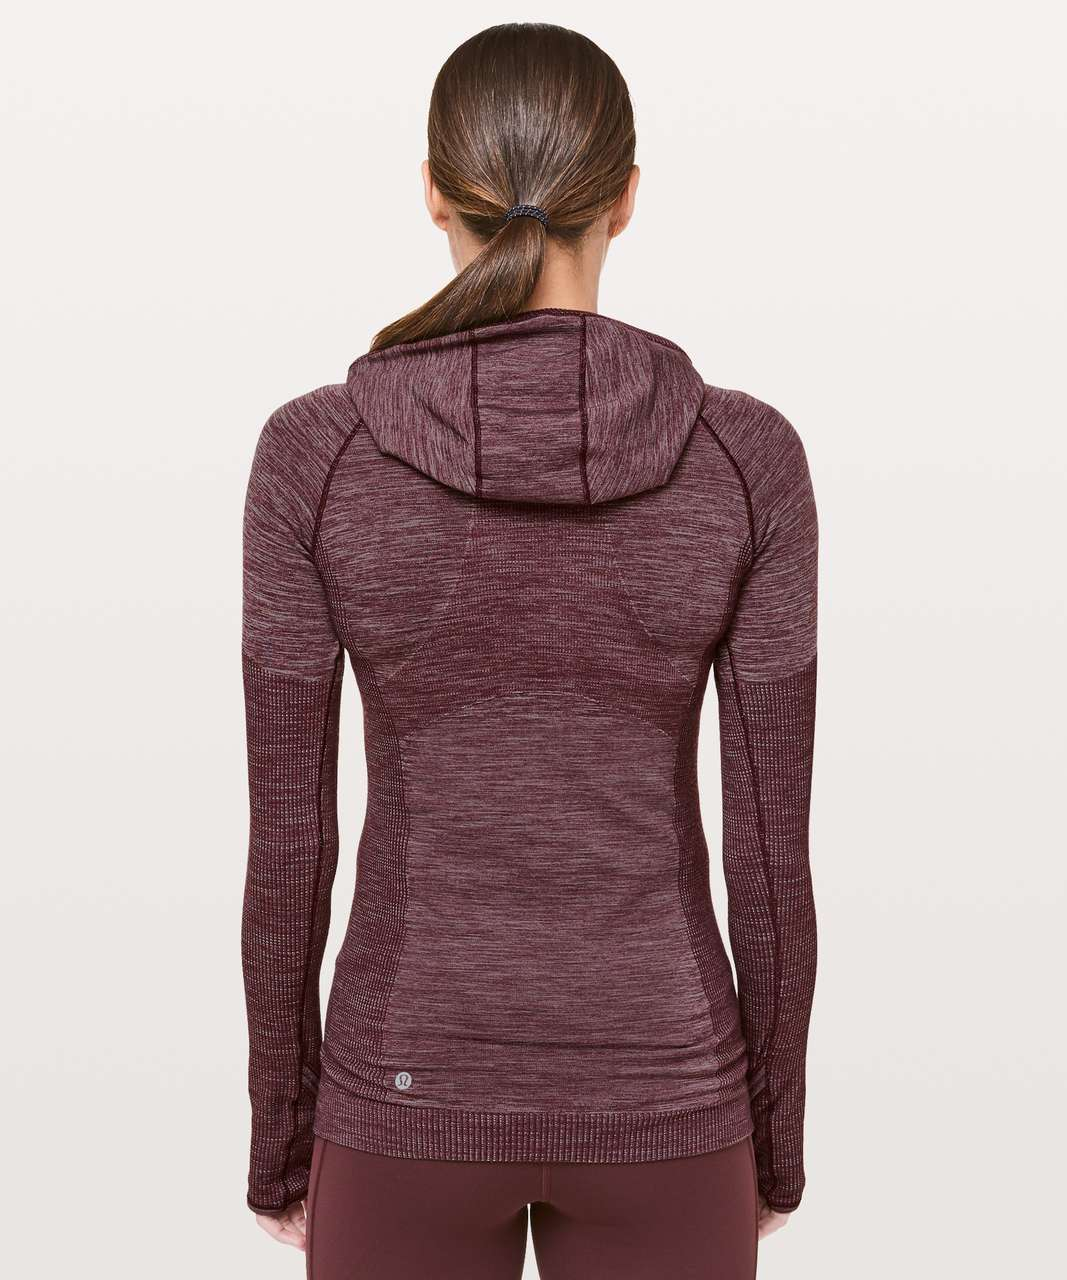 Lululemon Swiftly Wool 1/2 Zip Hoodie - Dark Adobe / White